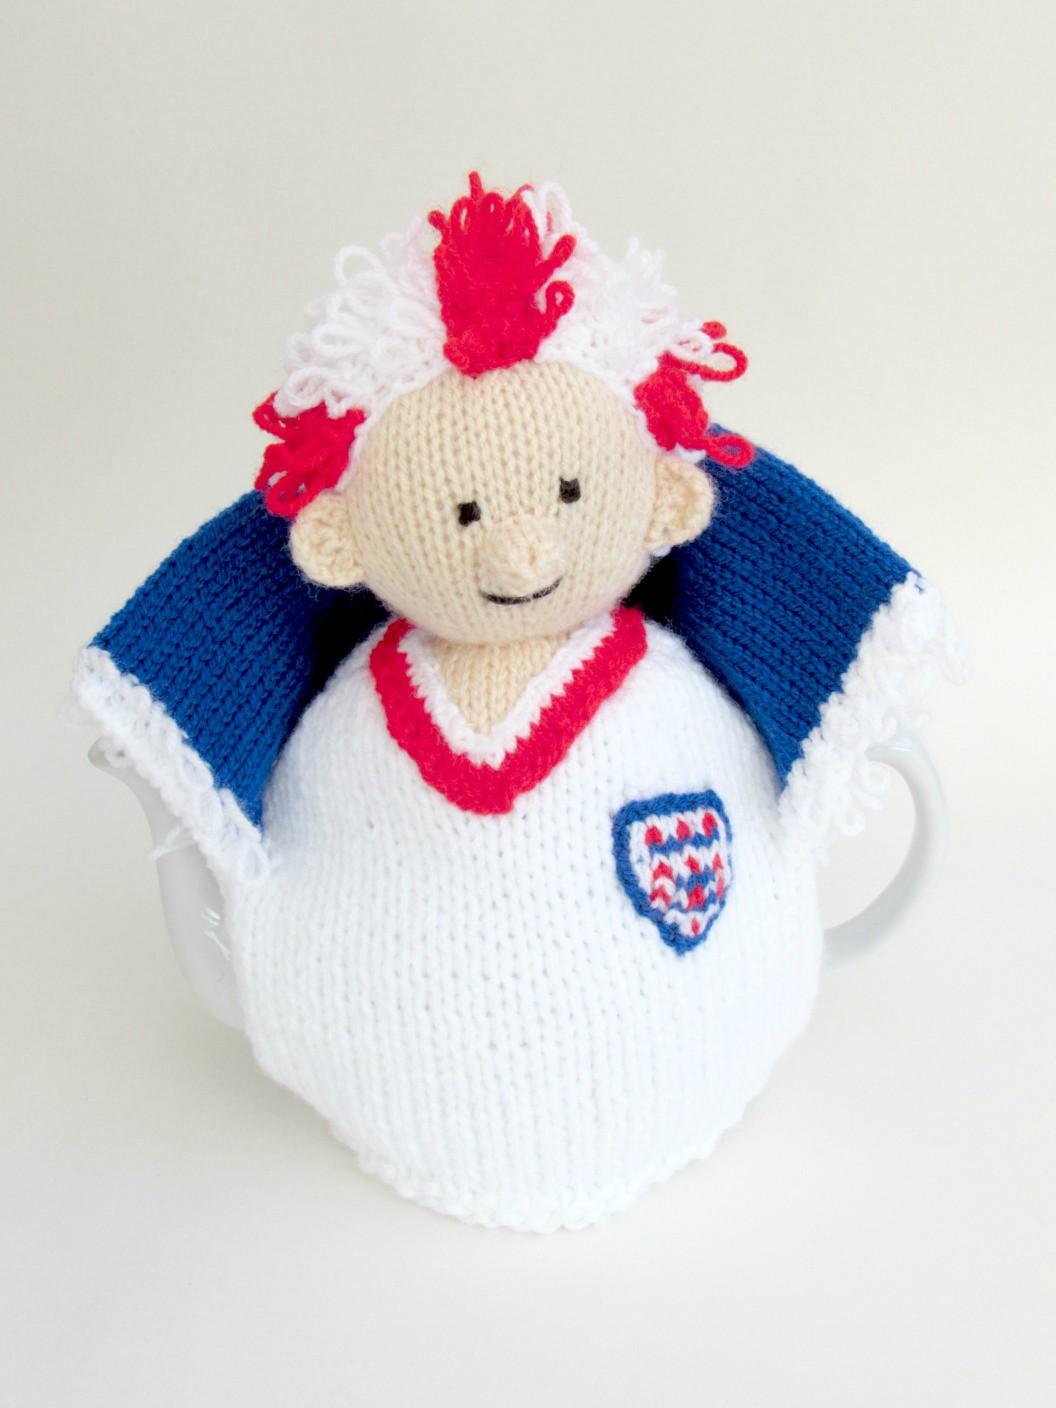 England Football Crazy knitting pattern